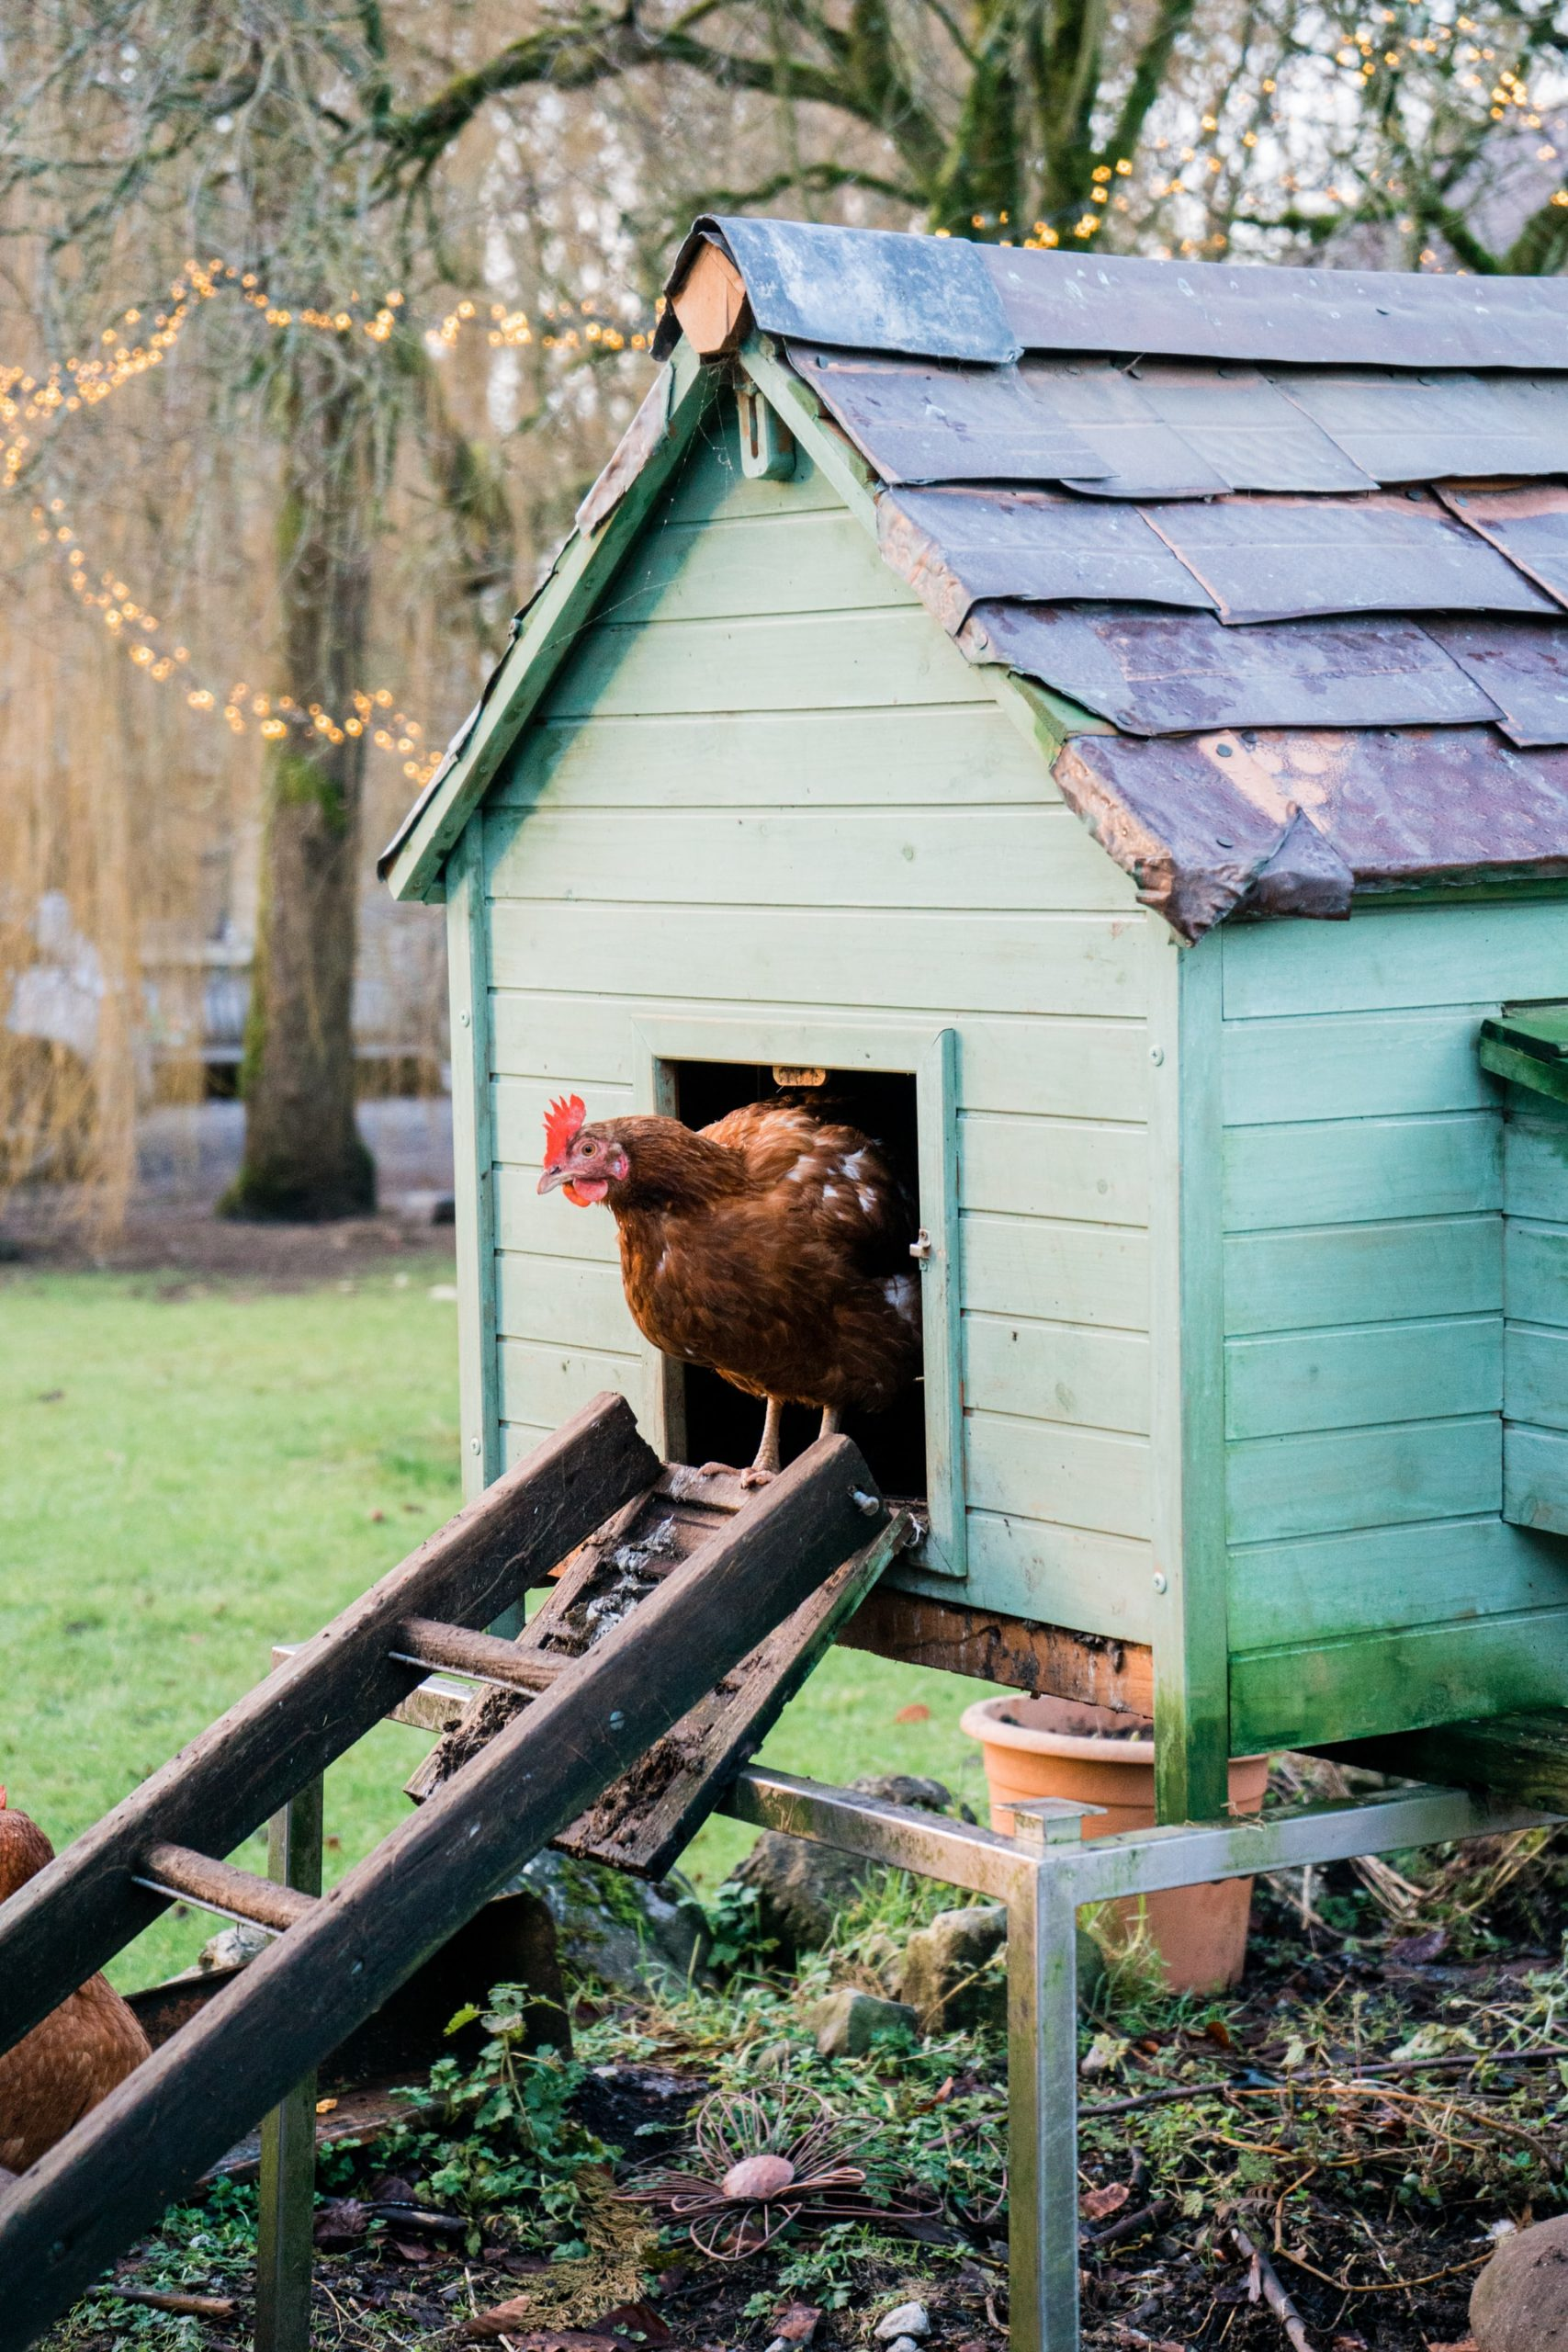 Best Chicken Breeds for Small Backyards and for the City.